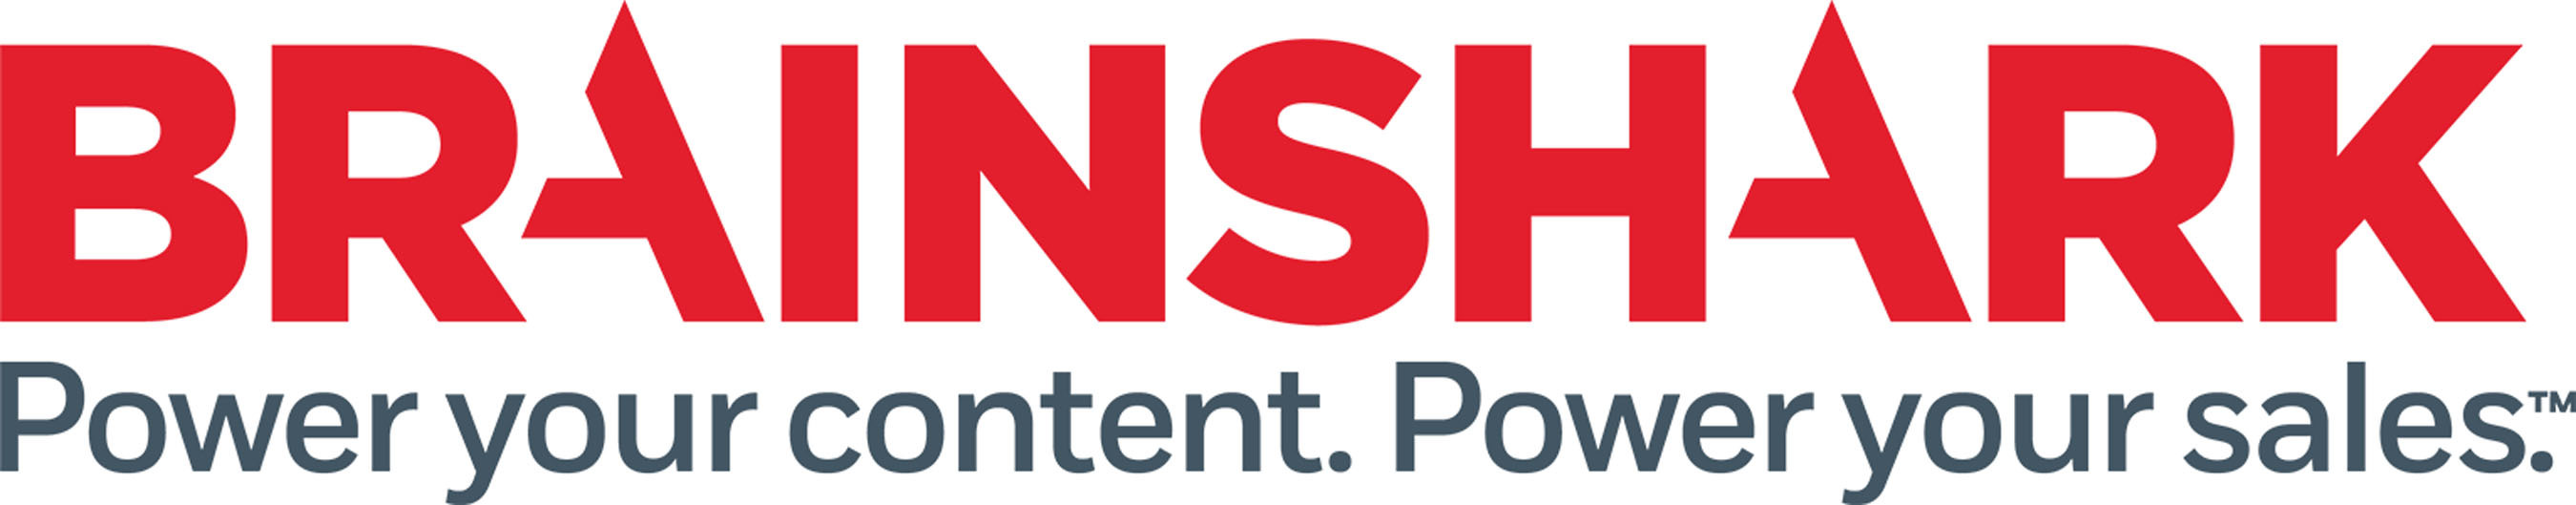 Brainshark, Inc. is the leader in online and mobile video presentations. www.brainshark.com.